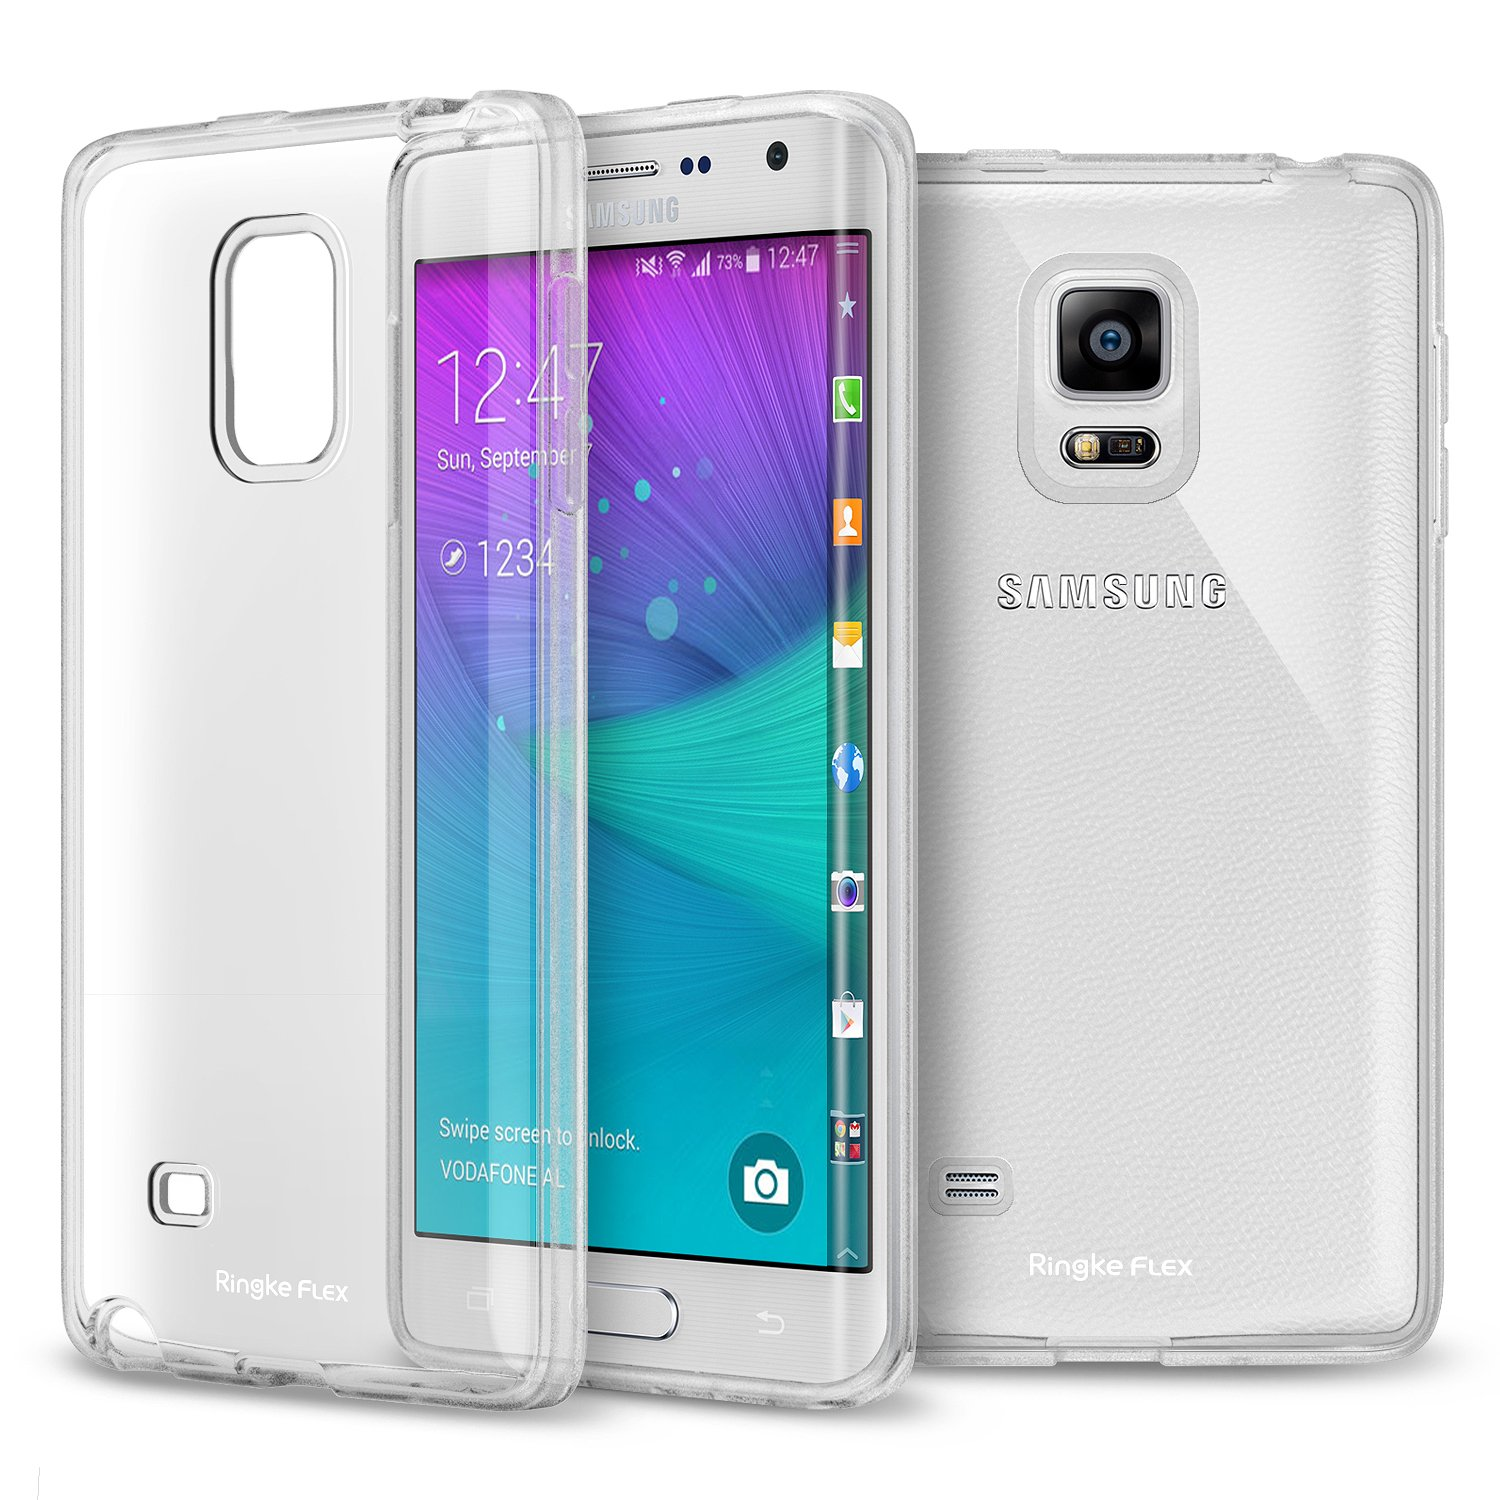 Galaxy Note Edge Case Ringke FLEX Case [Strong TPU][CRYSTAL VIEW] Premium Flexible Strong TPU Soft Gel Case Amazon Electronics